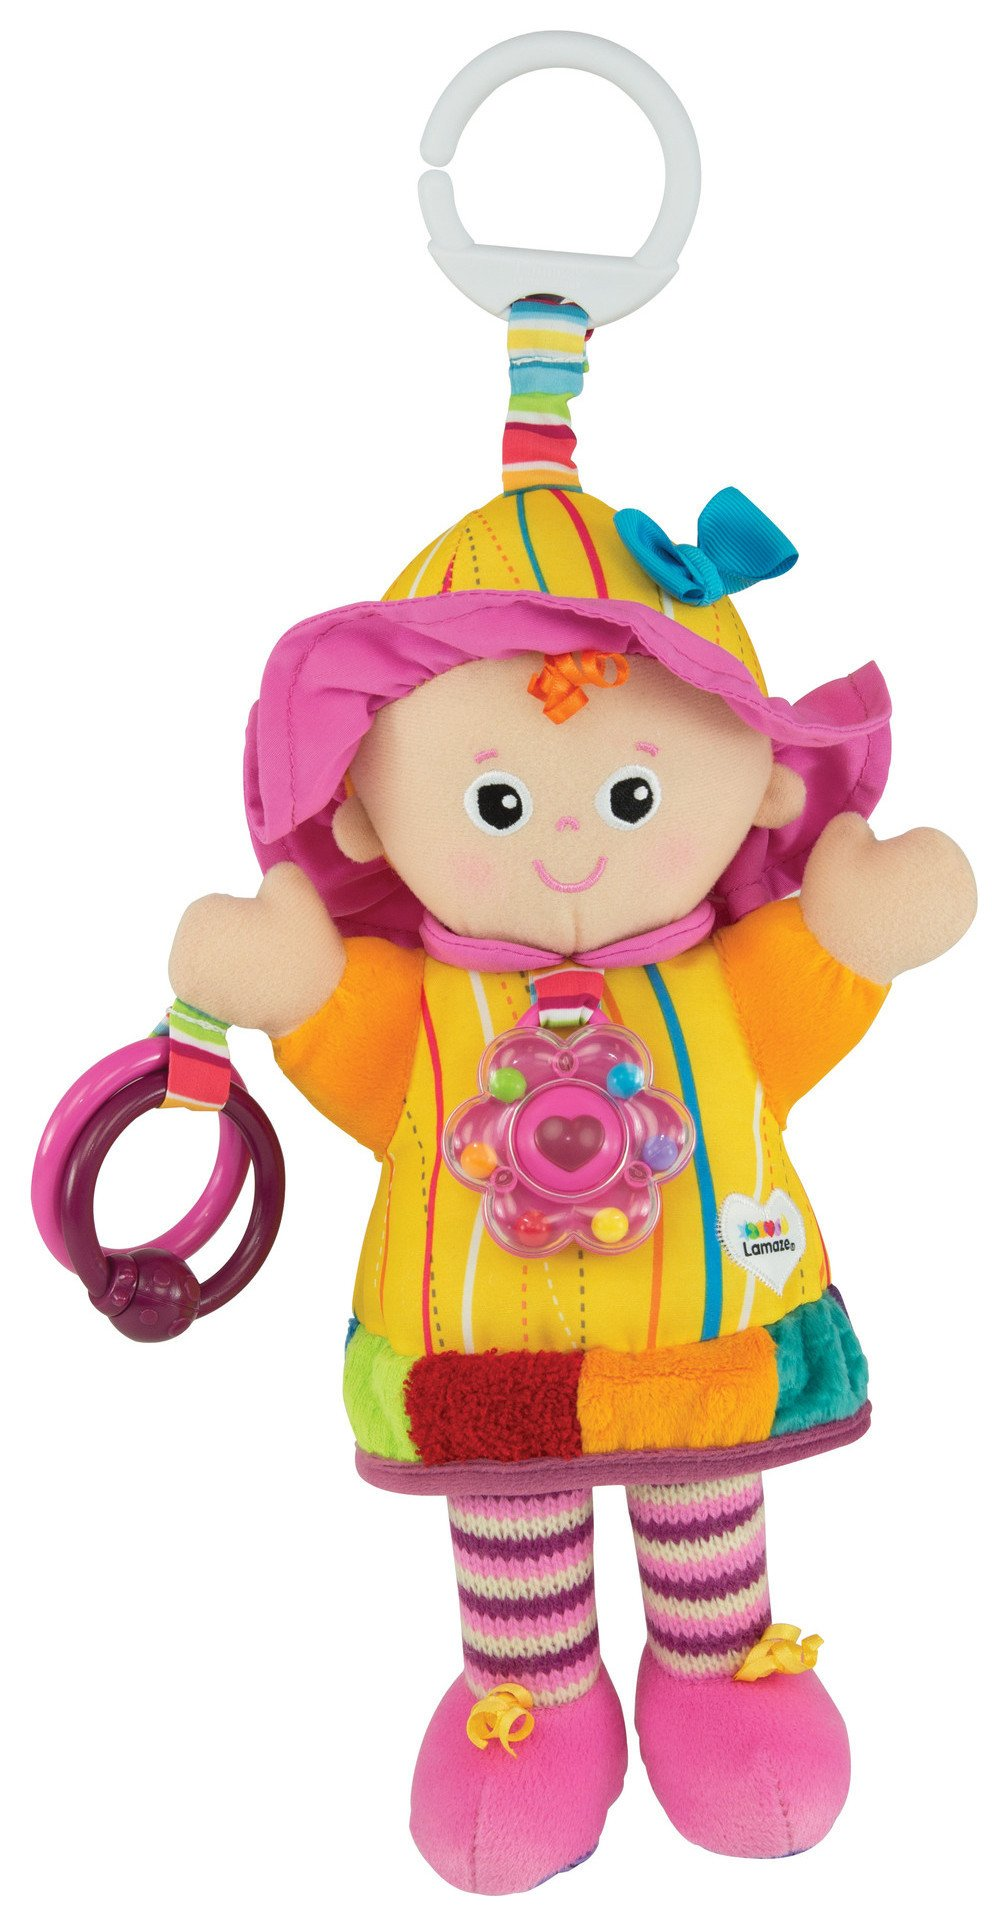 Image of Lamaze My Friend Emily On the Go Doll.